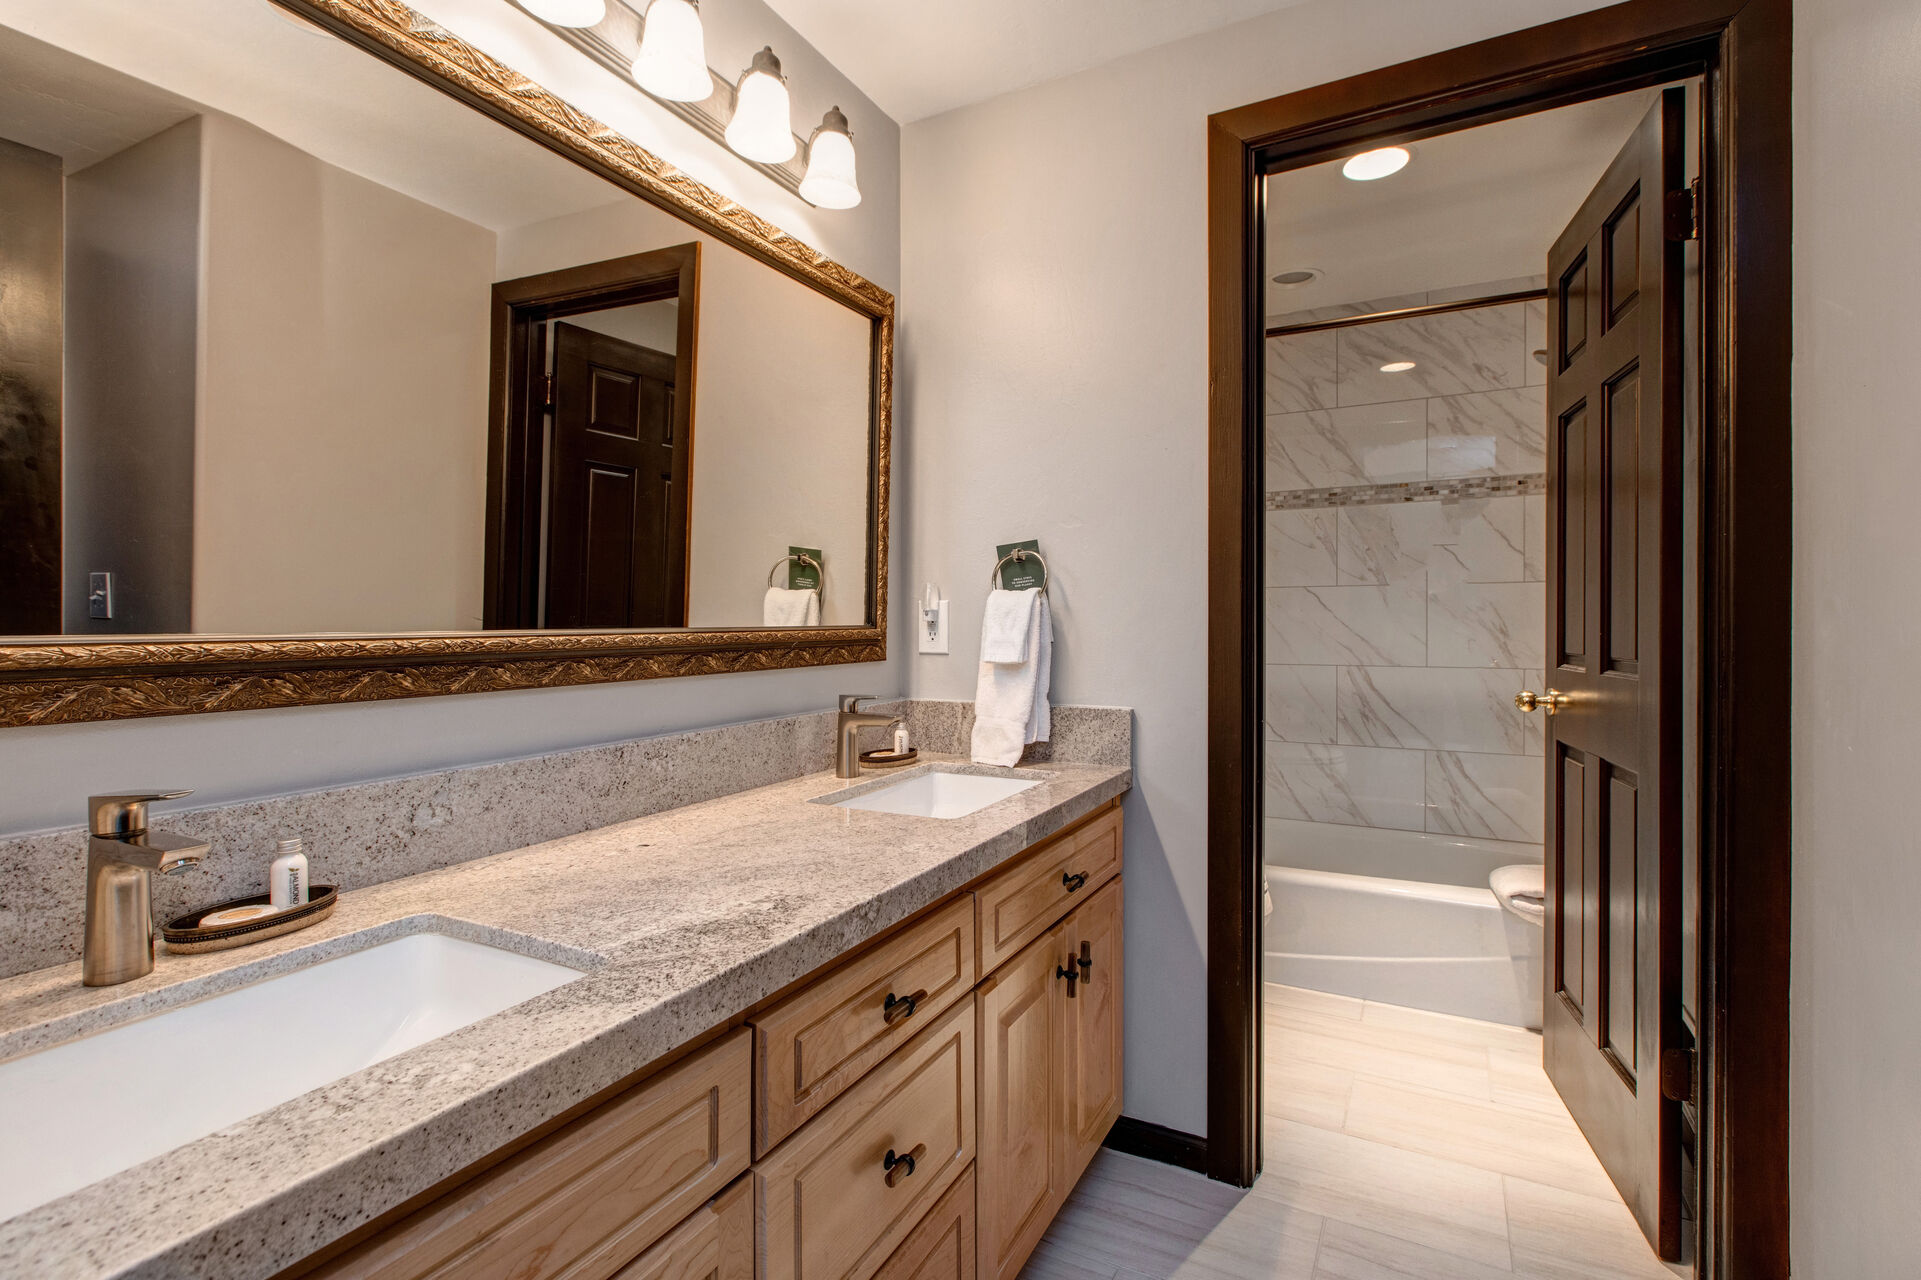 Lower Level Full Shared Bath with Dual Stone Counter Sinks and a Separate Tub/Shower Combo